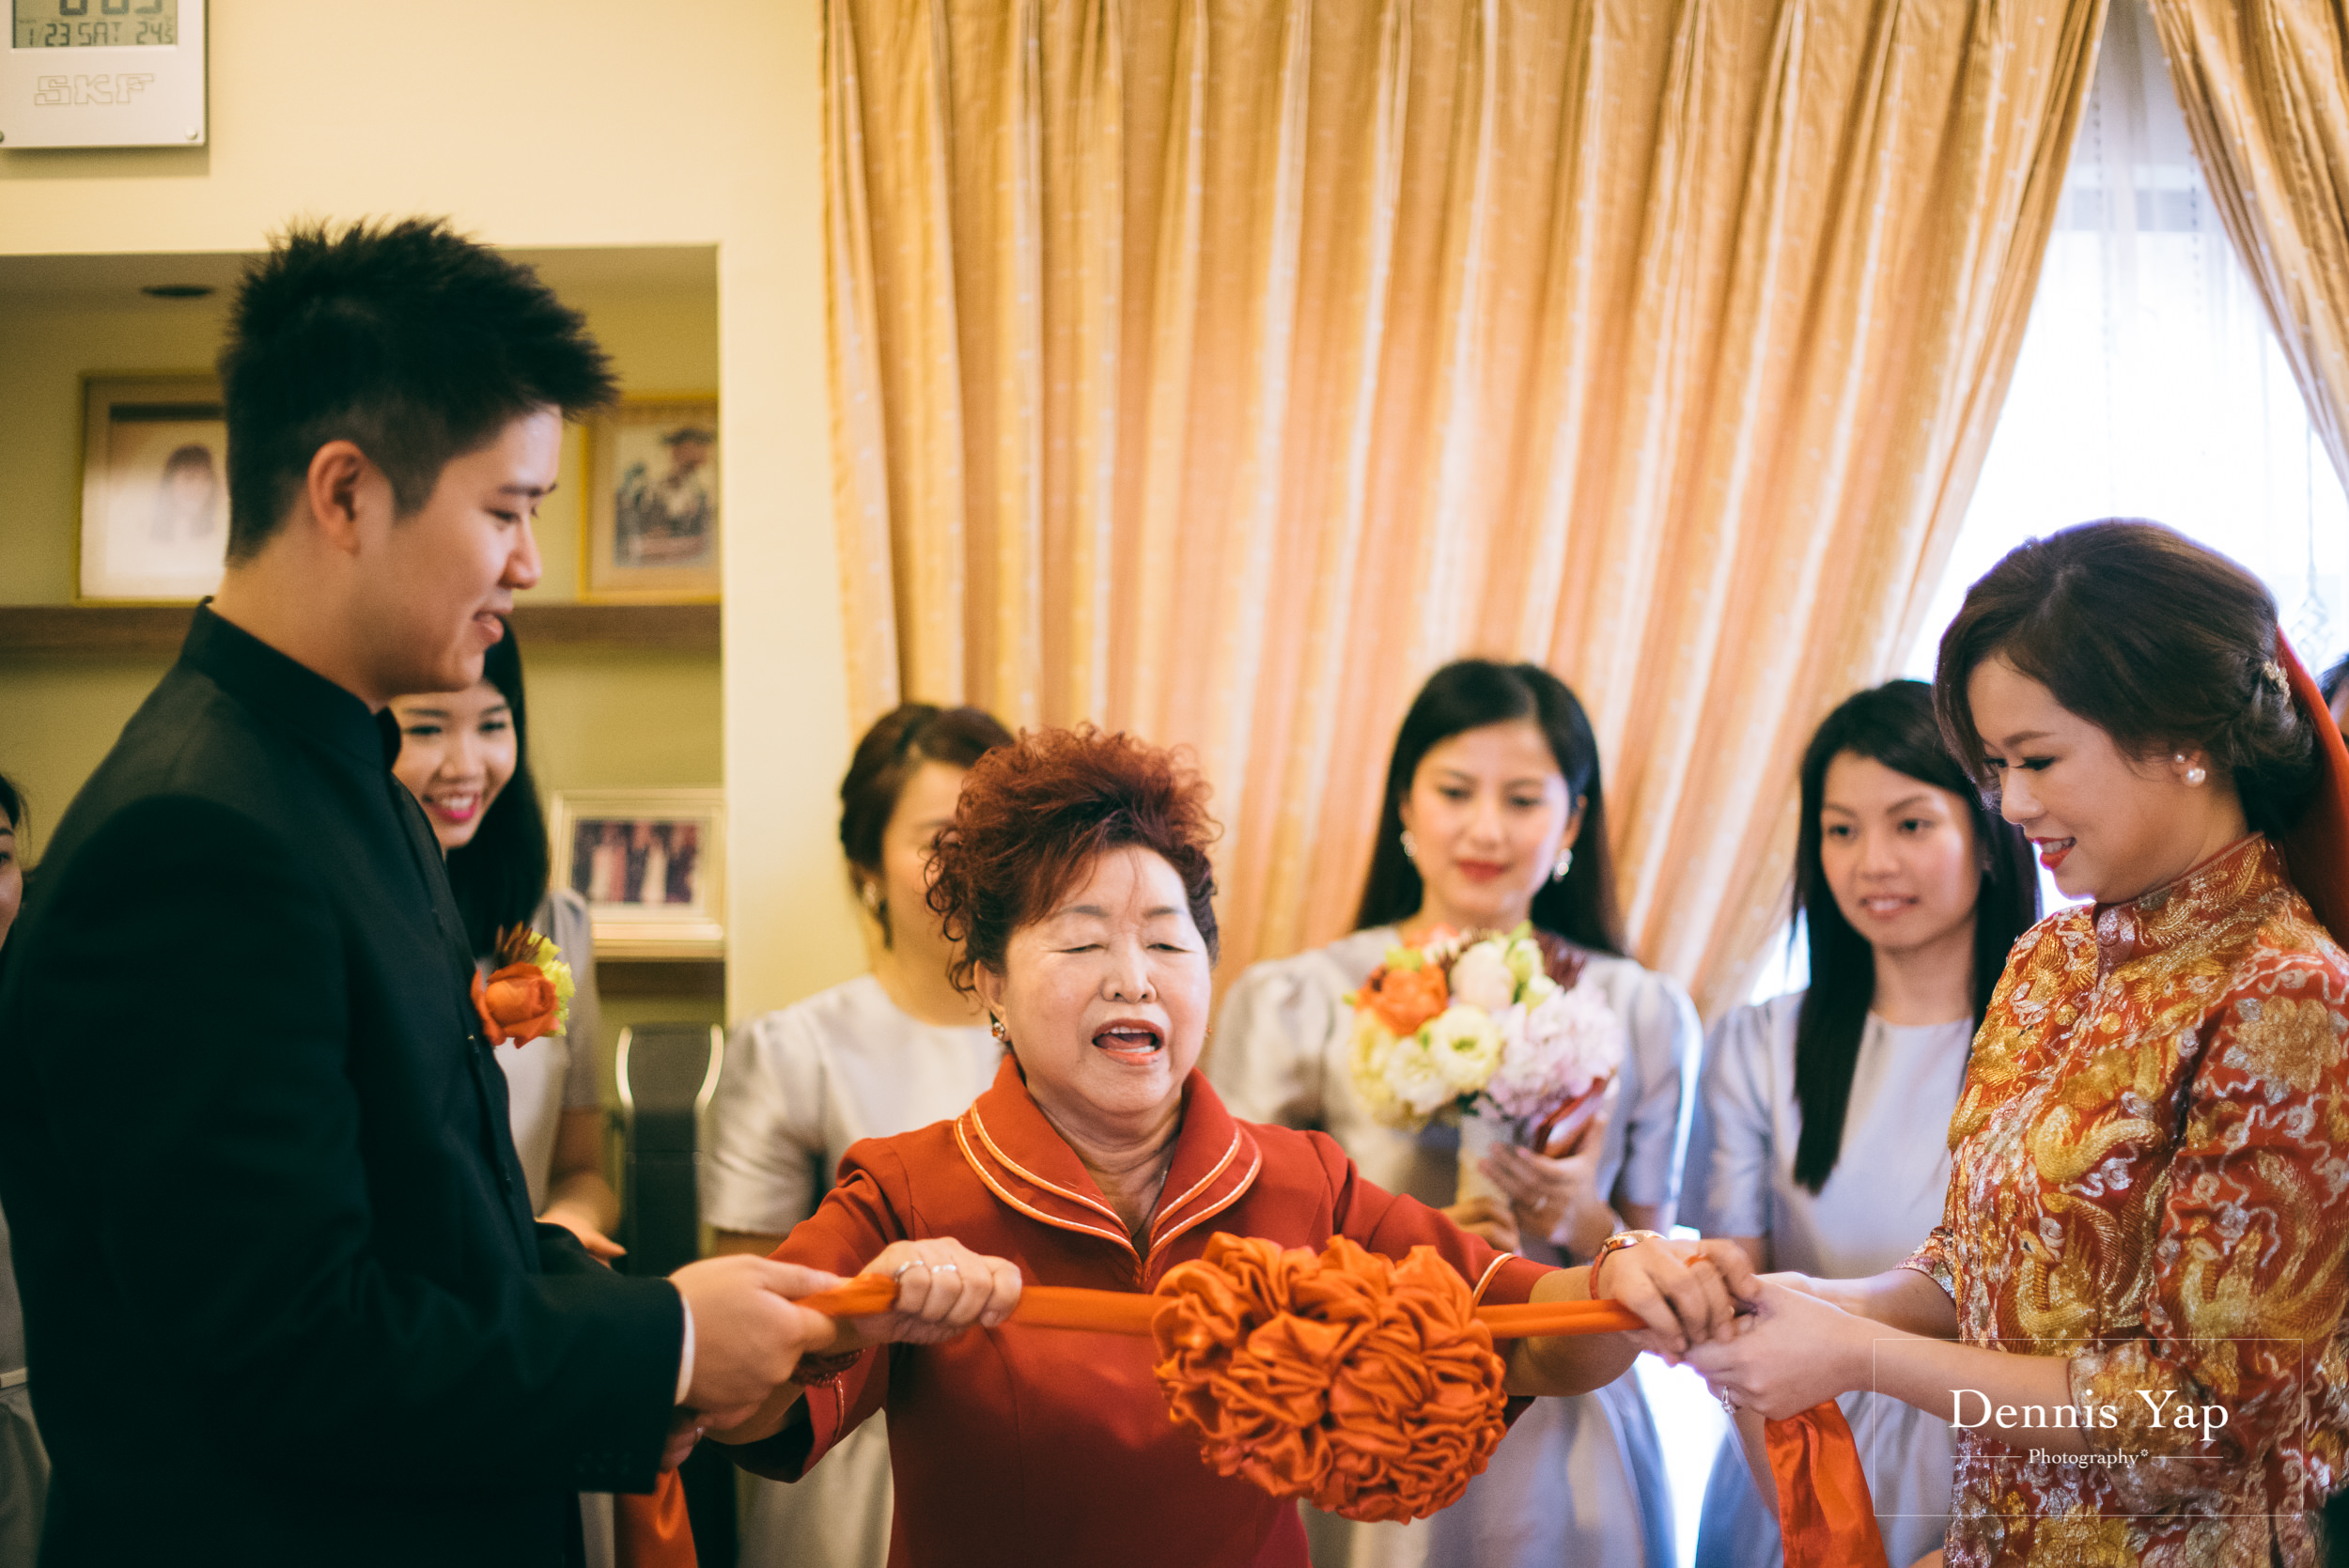 edmond erica tea ceremony kuala lumpur dennis yap photography chinese traditional happy-8.jpg